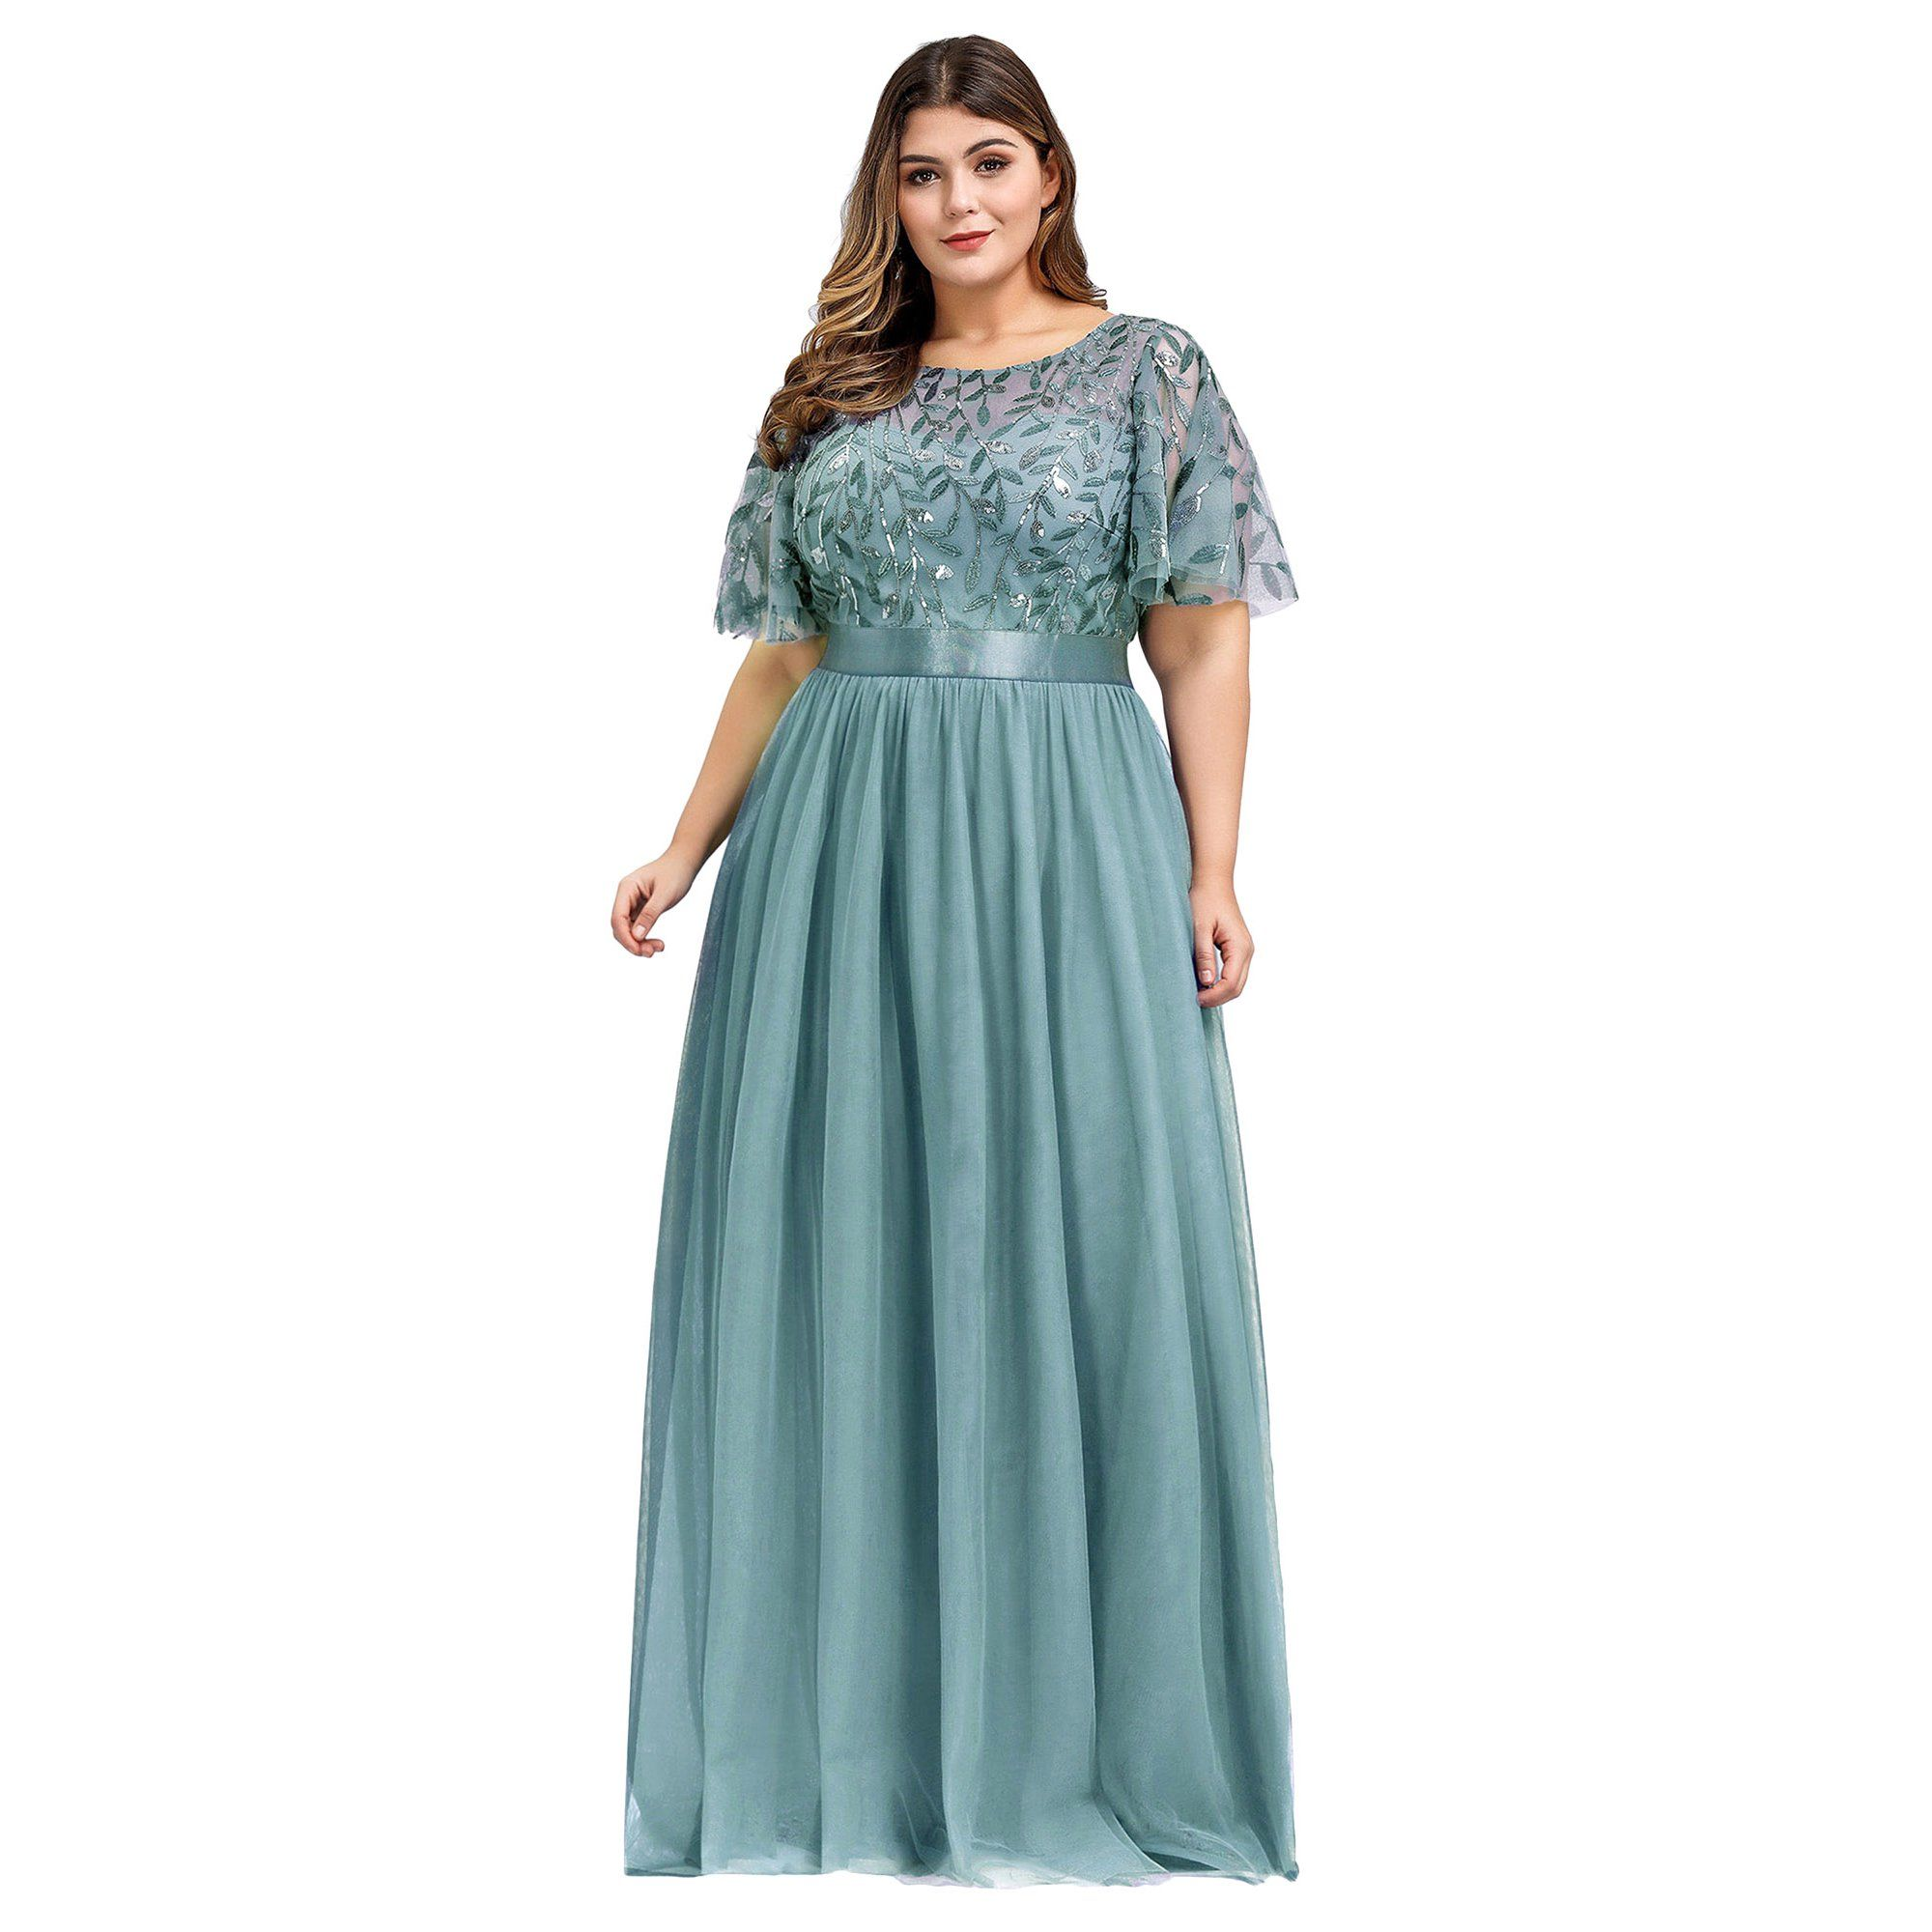 Ever Pretty Ever Pretty Womens Plus Size Mother Of The Bride Dresses For Women 09042 Grey Us20 Walmart Com In 2020 Bridesmaid Dresses Plus Size Beautiful Evening Dresses Evening Dresses [ 2000 x 2000 Pixel ]